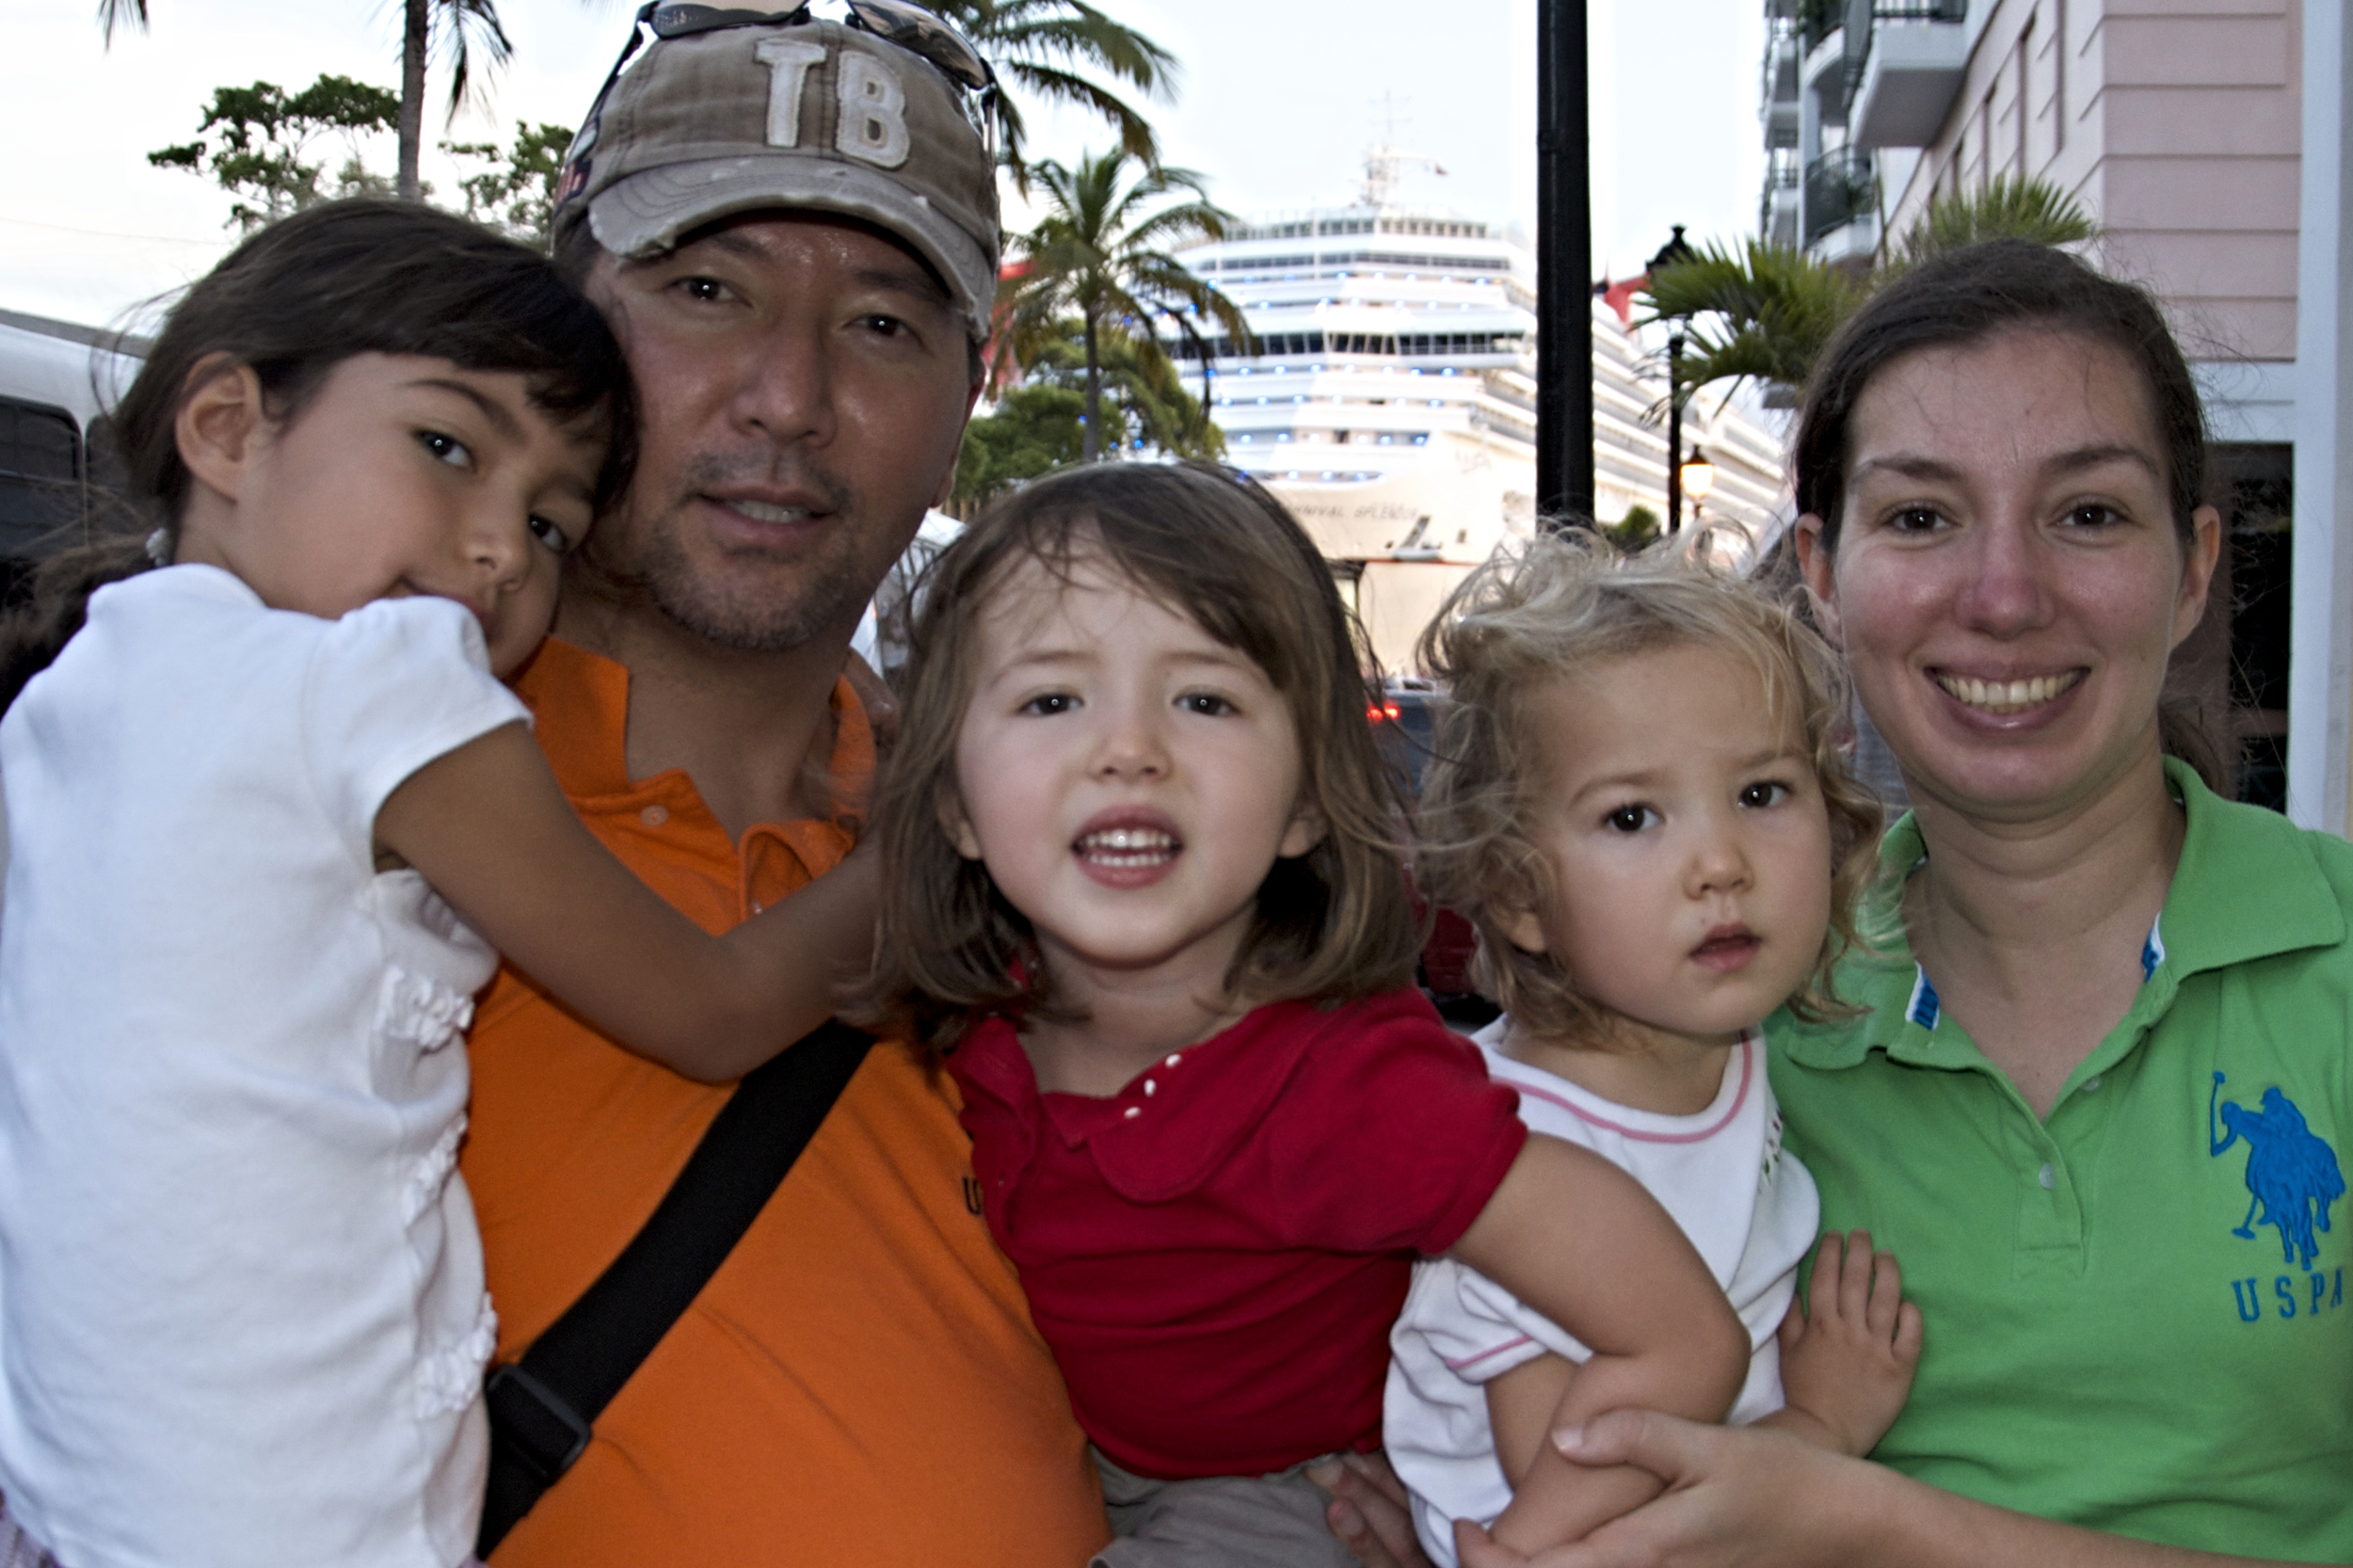 Pastor Jiwan Moon, his wife Jessica, and their daughters